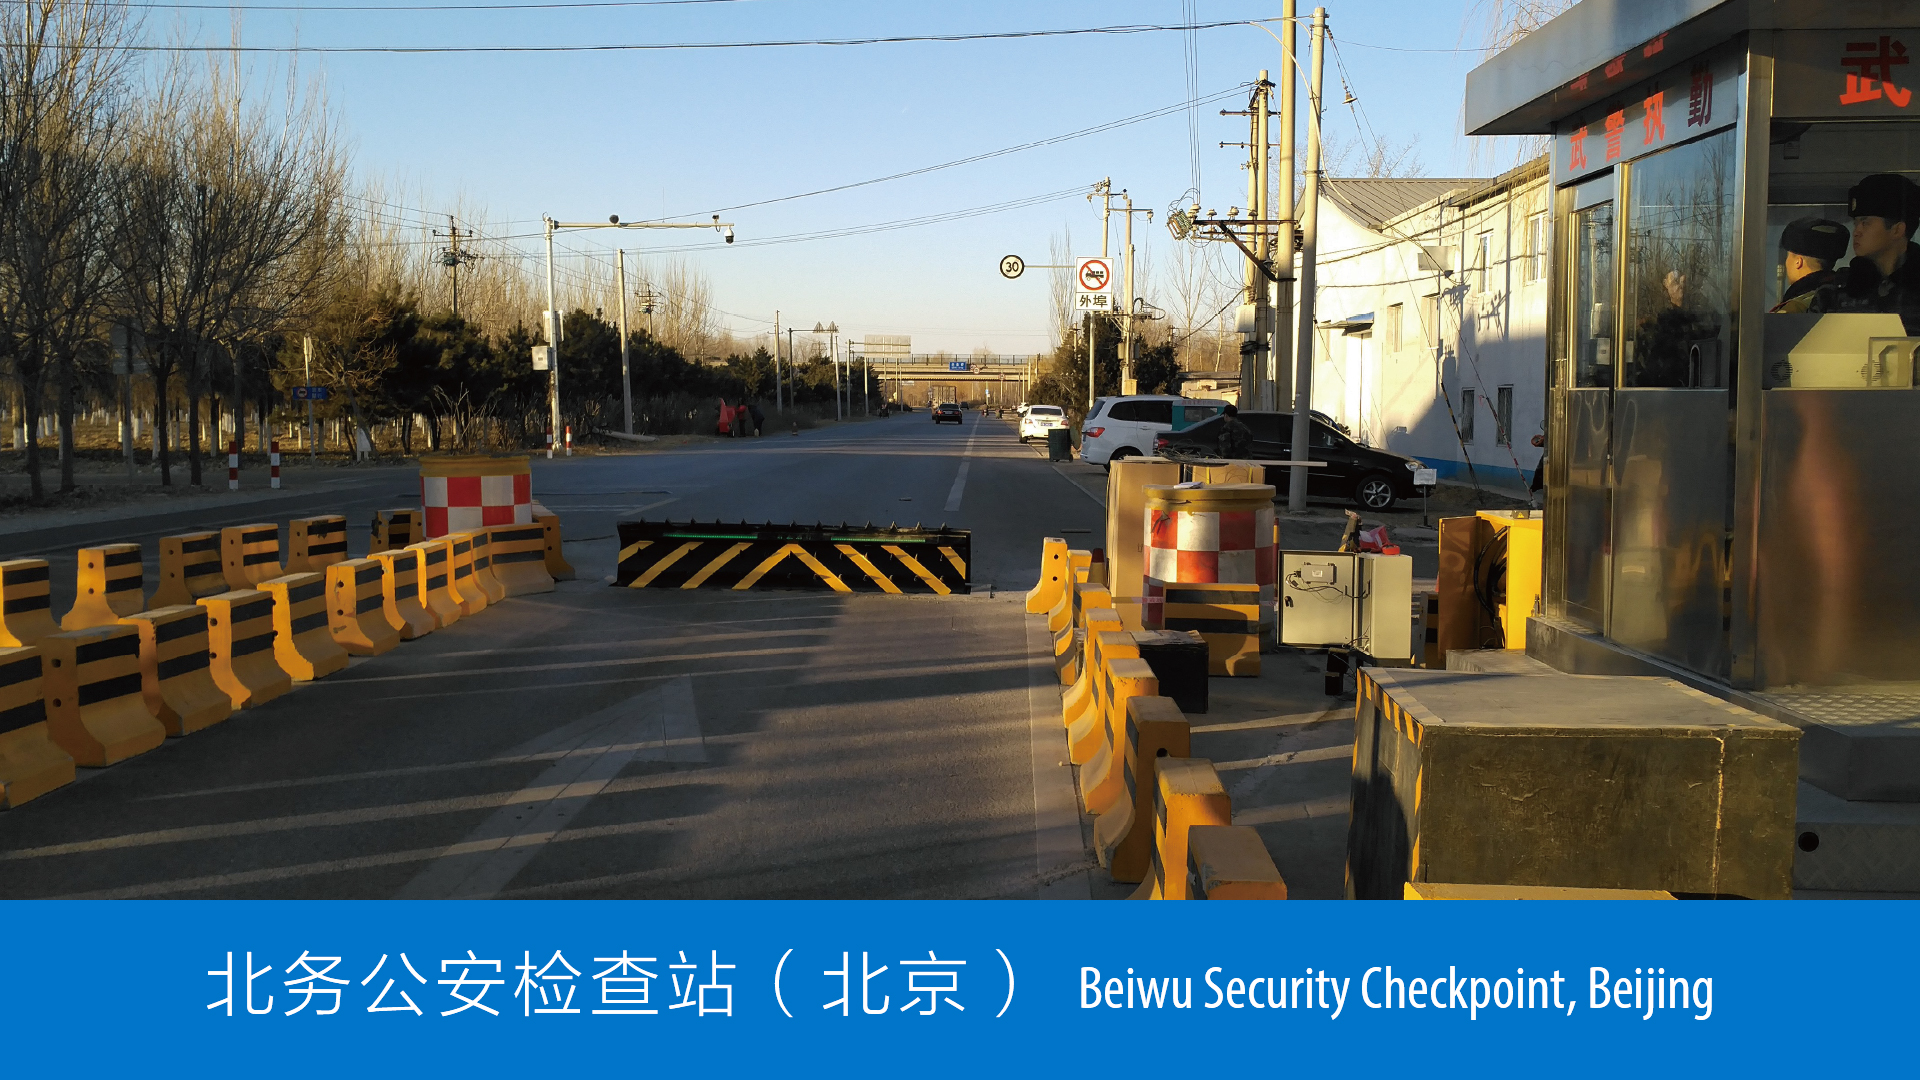 Road blocker - Security check point - Be